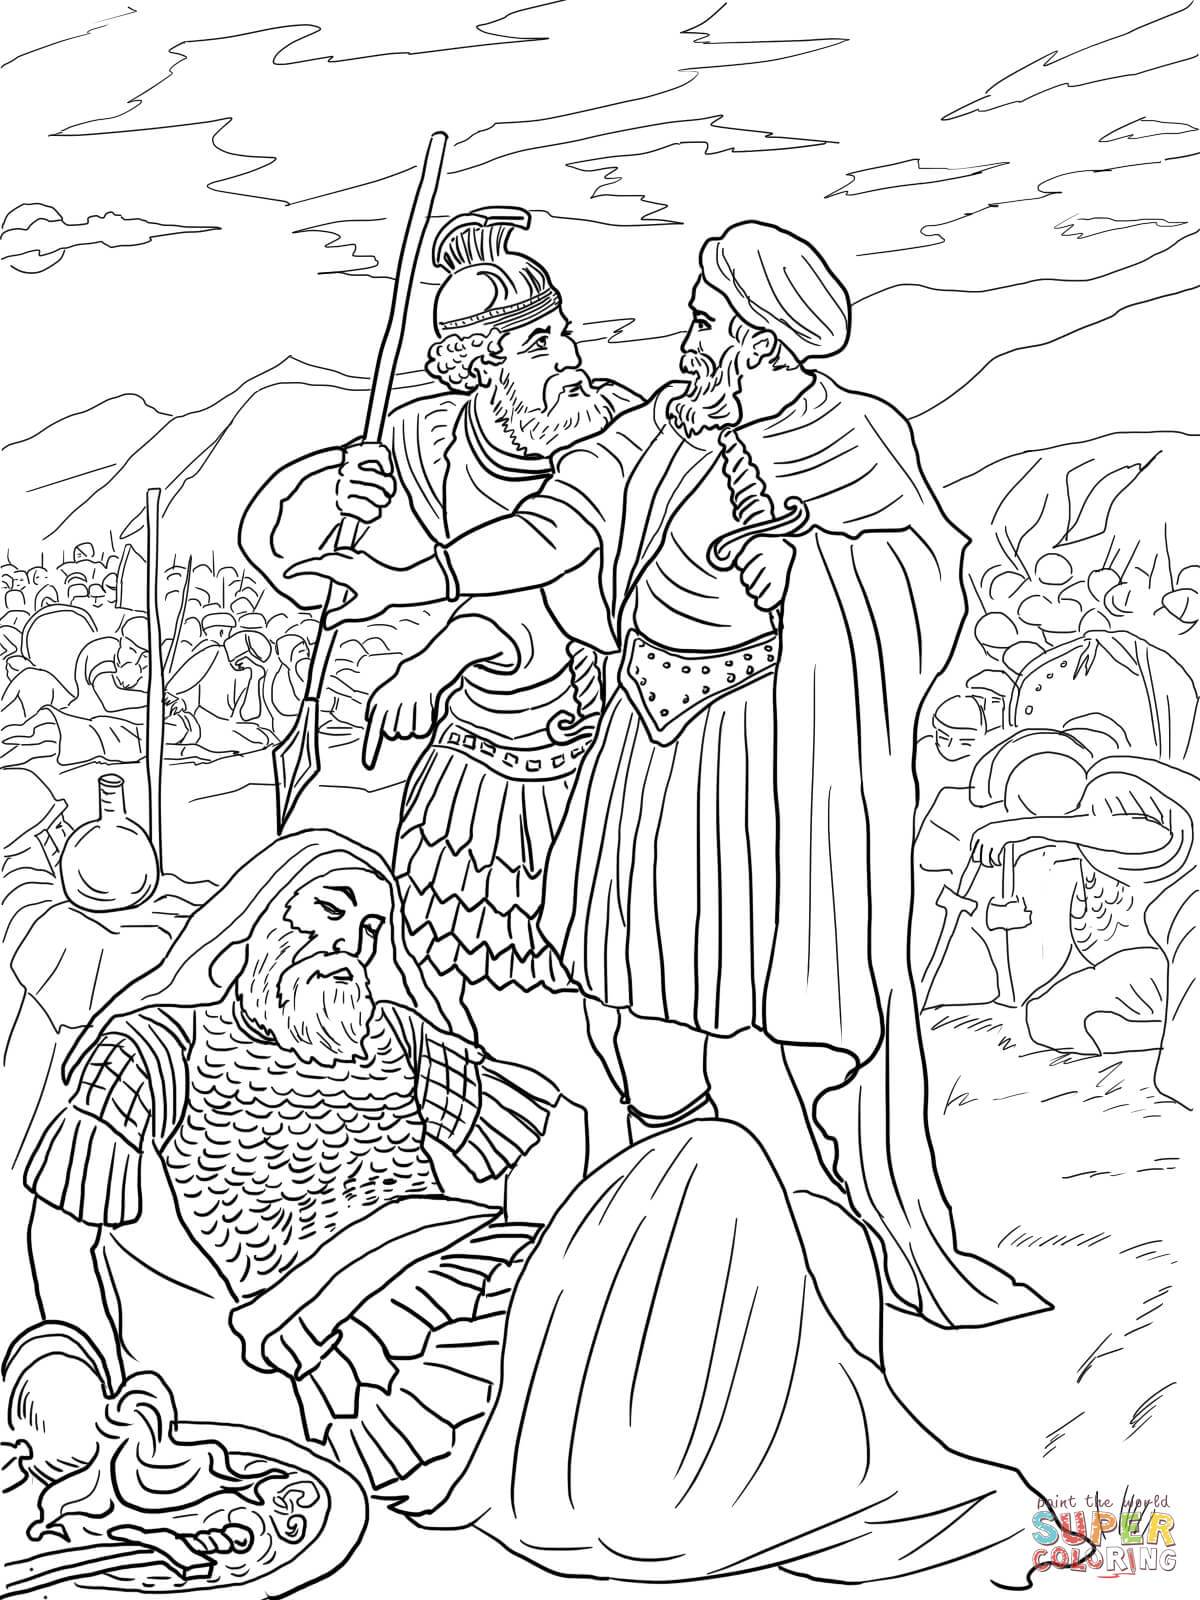 bible coloring pages king saul the first king of israel is king saul coloring page netart coloring saul pages king bible